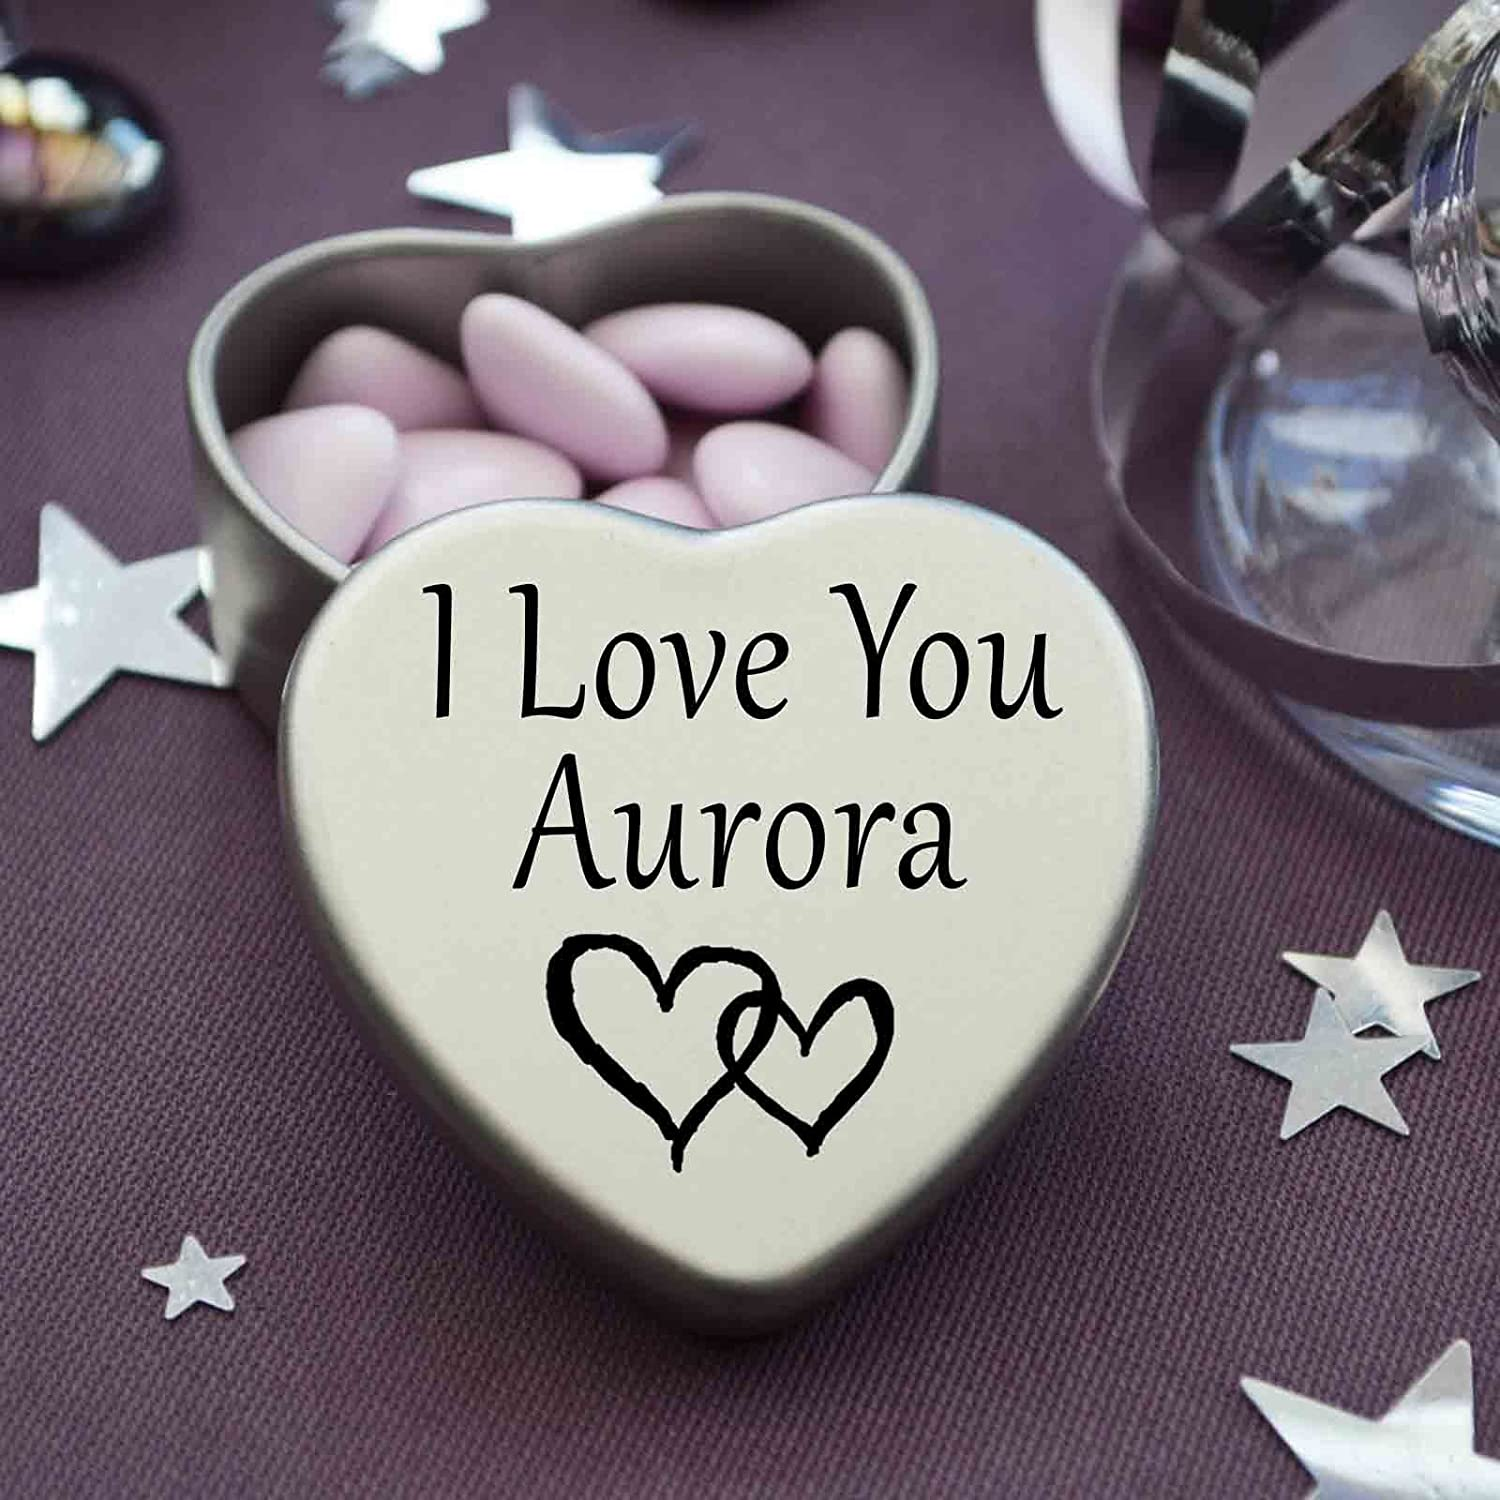 I love you aurora mini heart tin gift for i heart aurora with i love you aurora mini heart tin gift for i heart aurora with chocolates silver heart tin fits beautifully in the palm of your hand thecheapjerseys Image collections